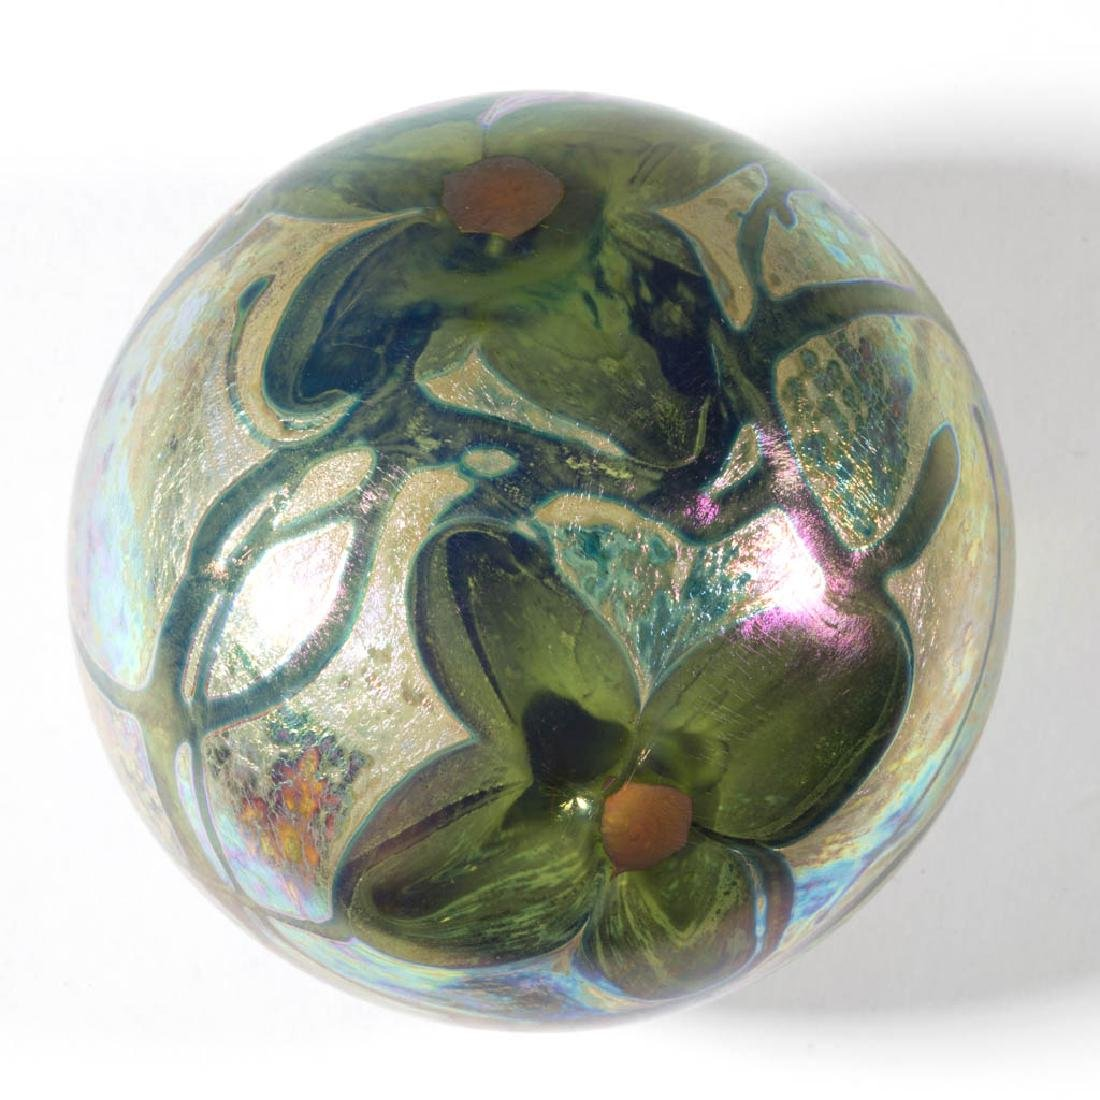 FLORAL AND IRIDESCENT STUDIO ART GLASS PAPERWEIGHT